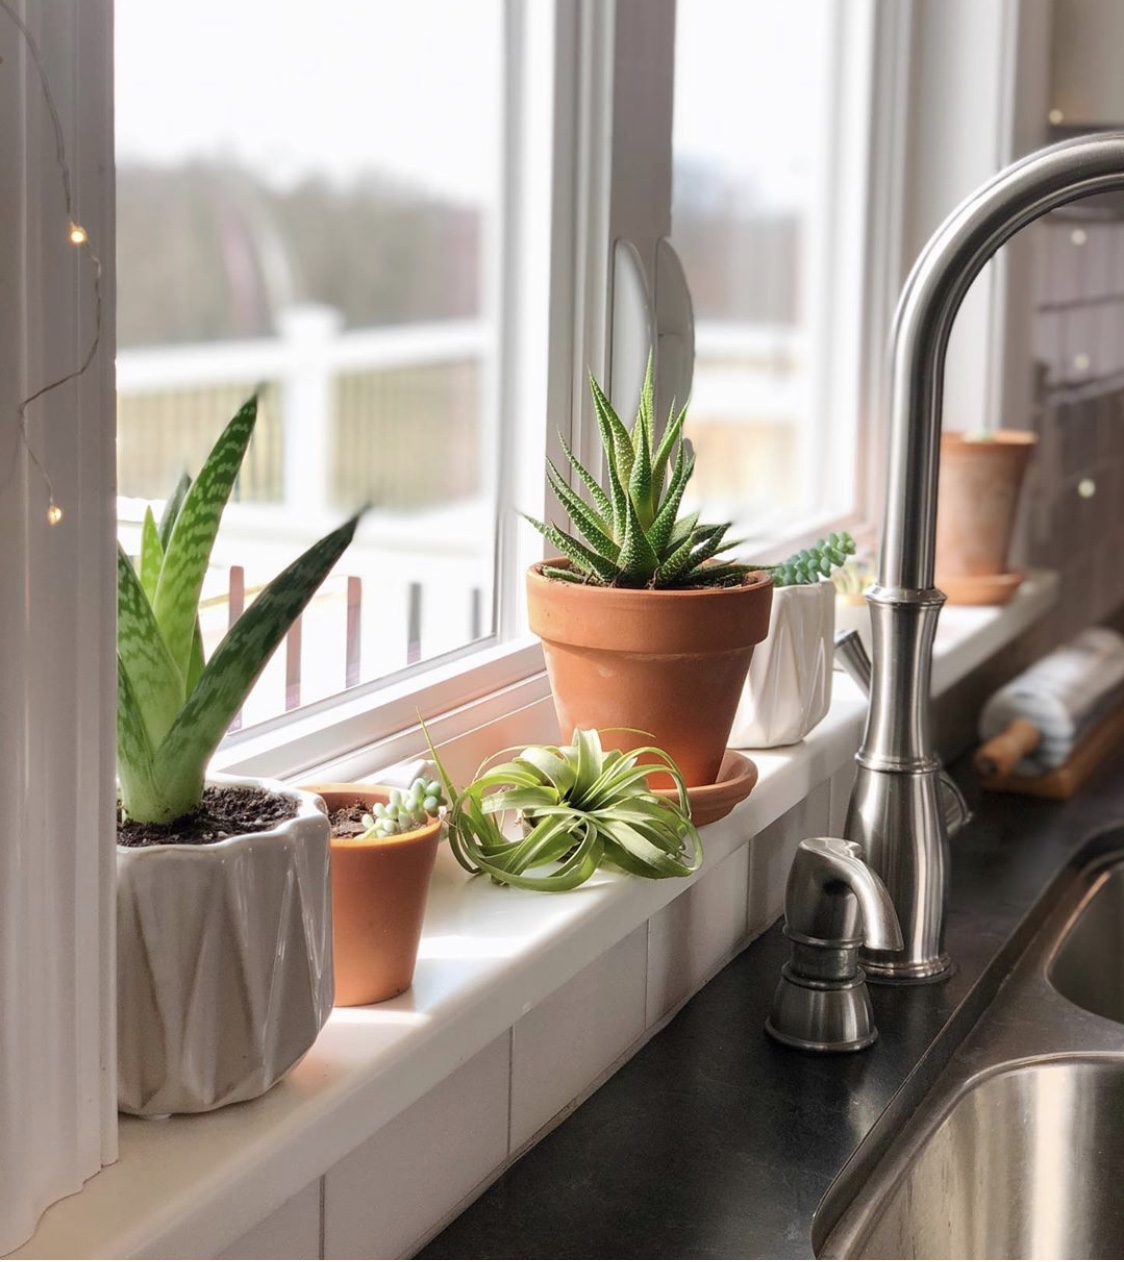 10 House Plants That Are Great For Your